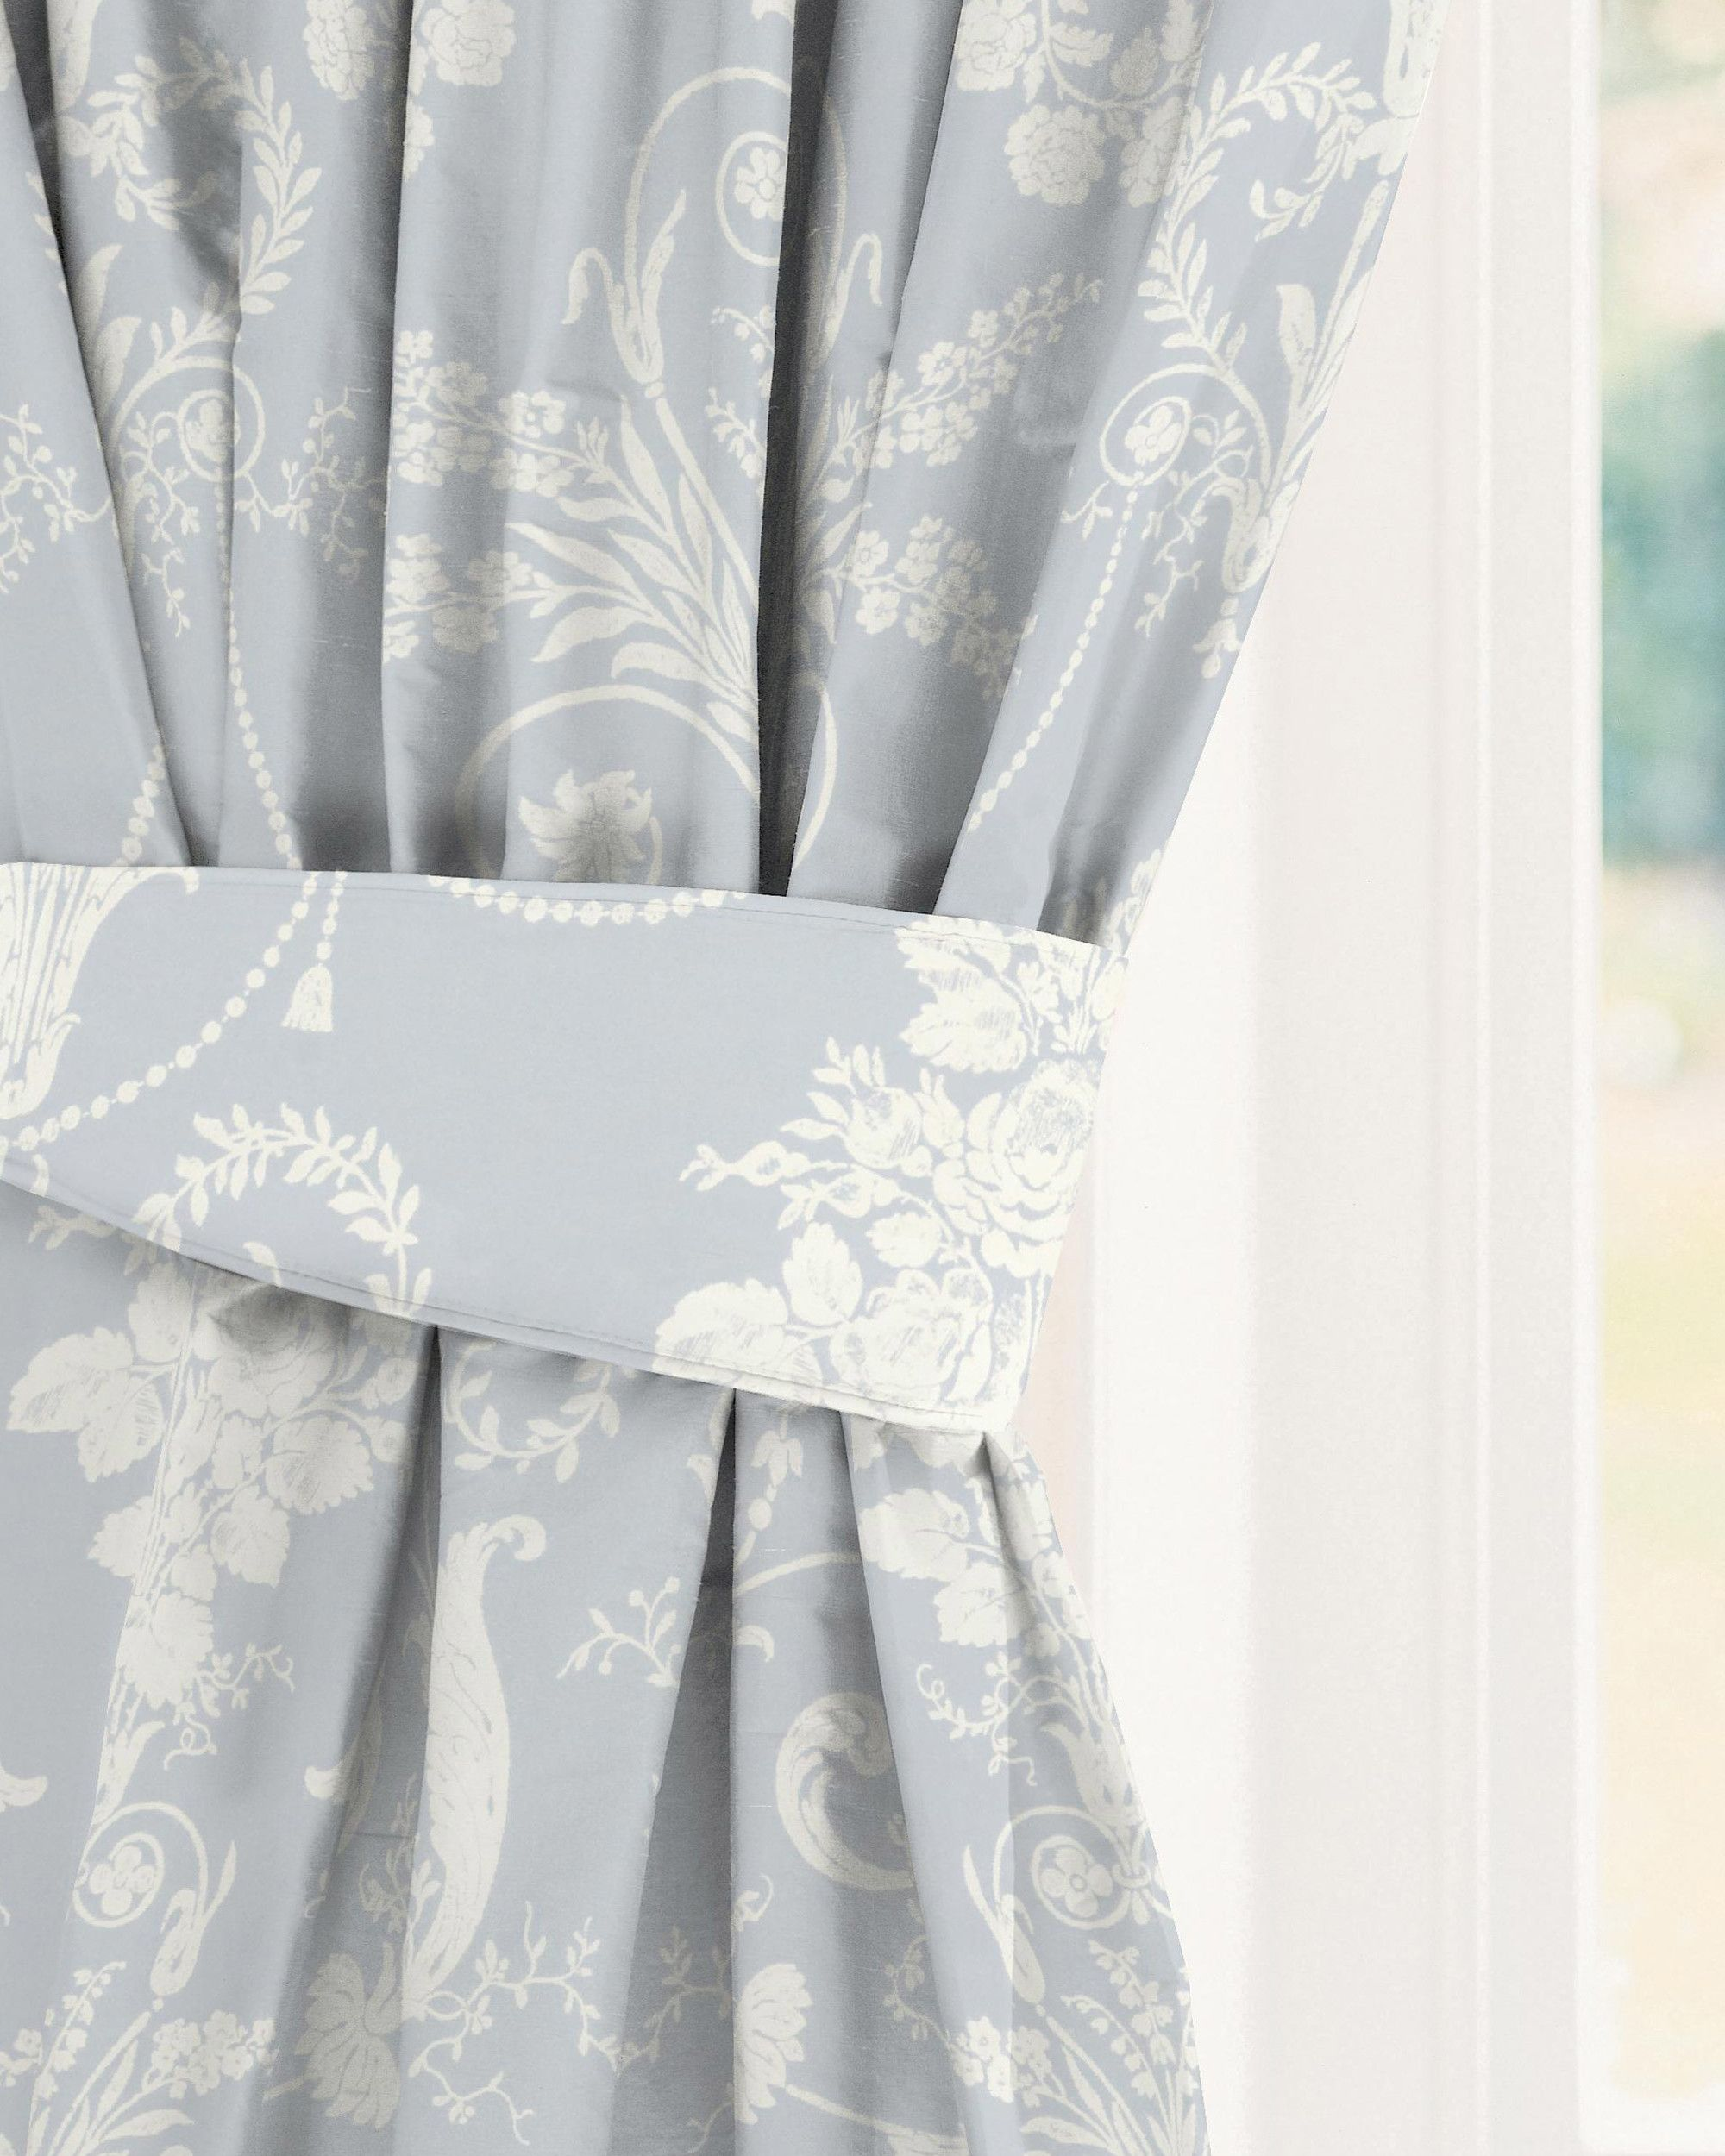 Made To Measure Curtains In Josette Seaspray Laura Ashley Home